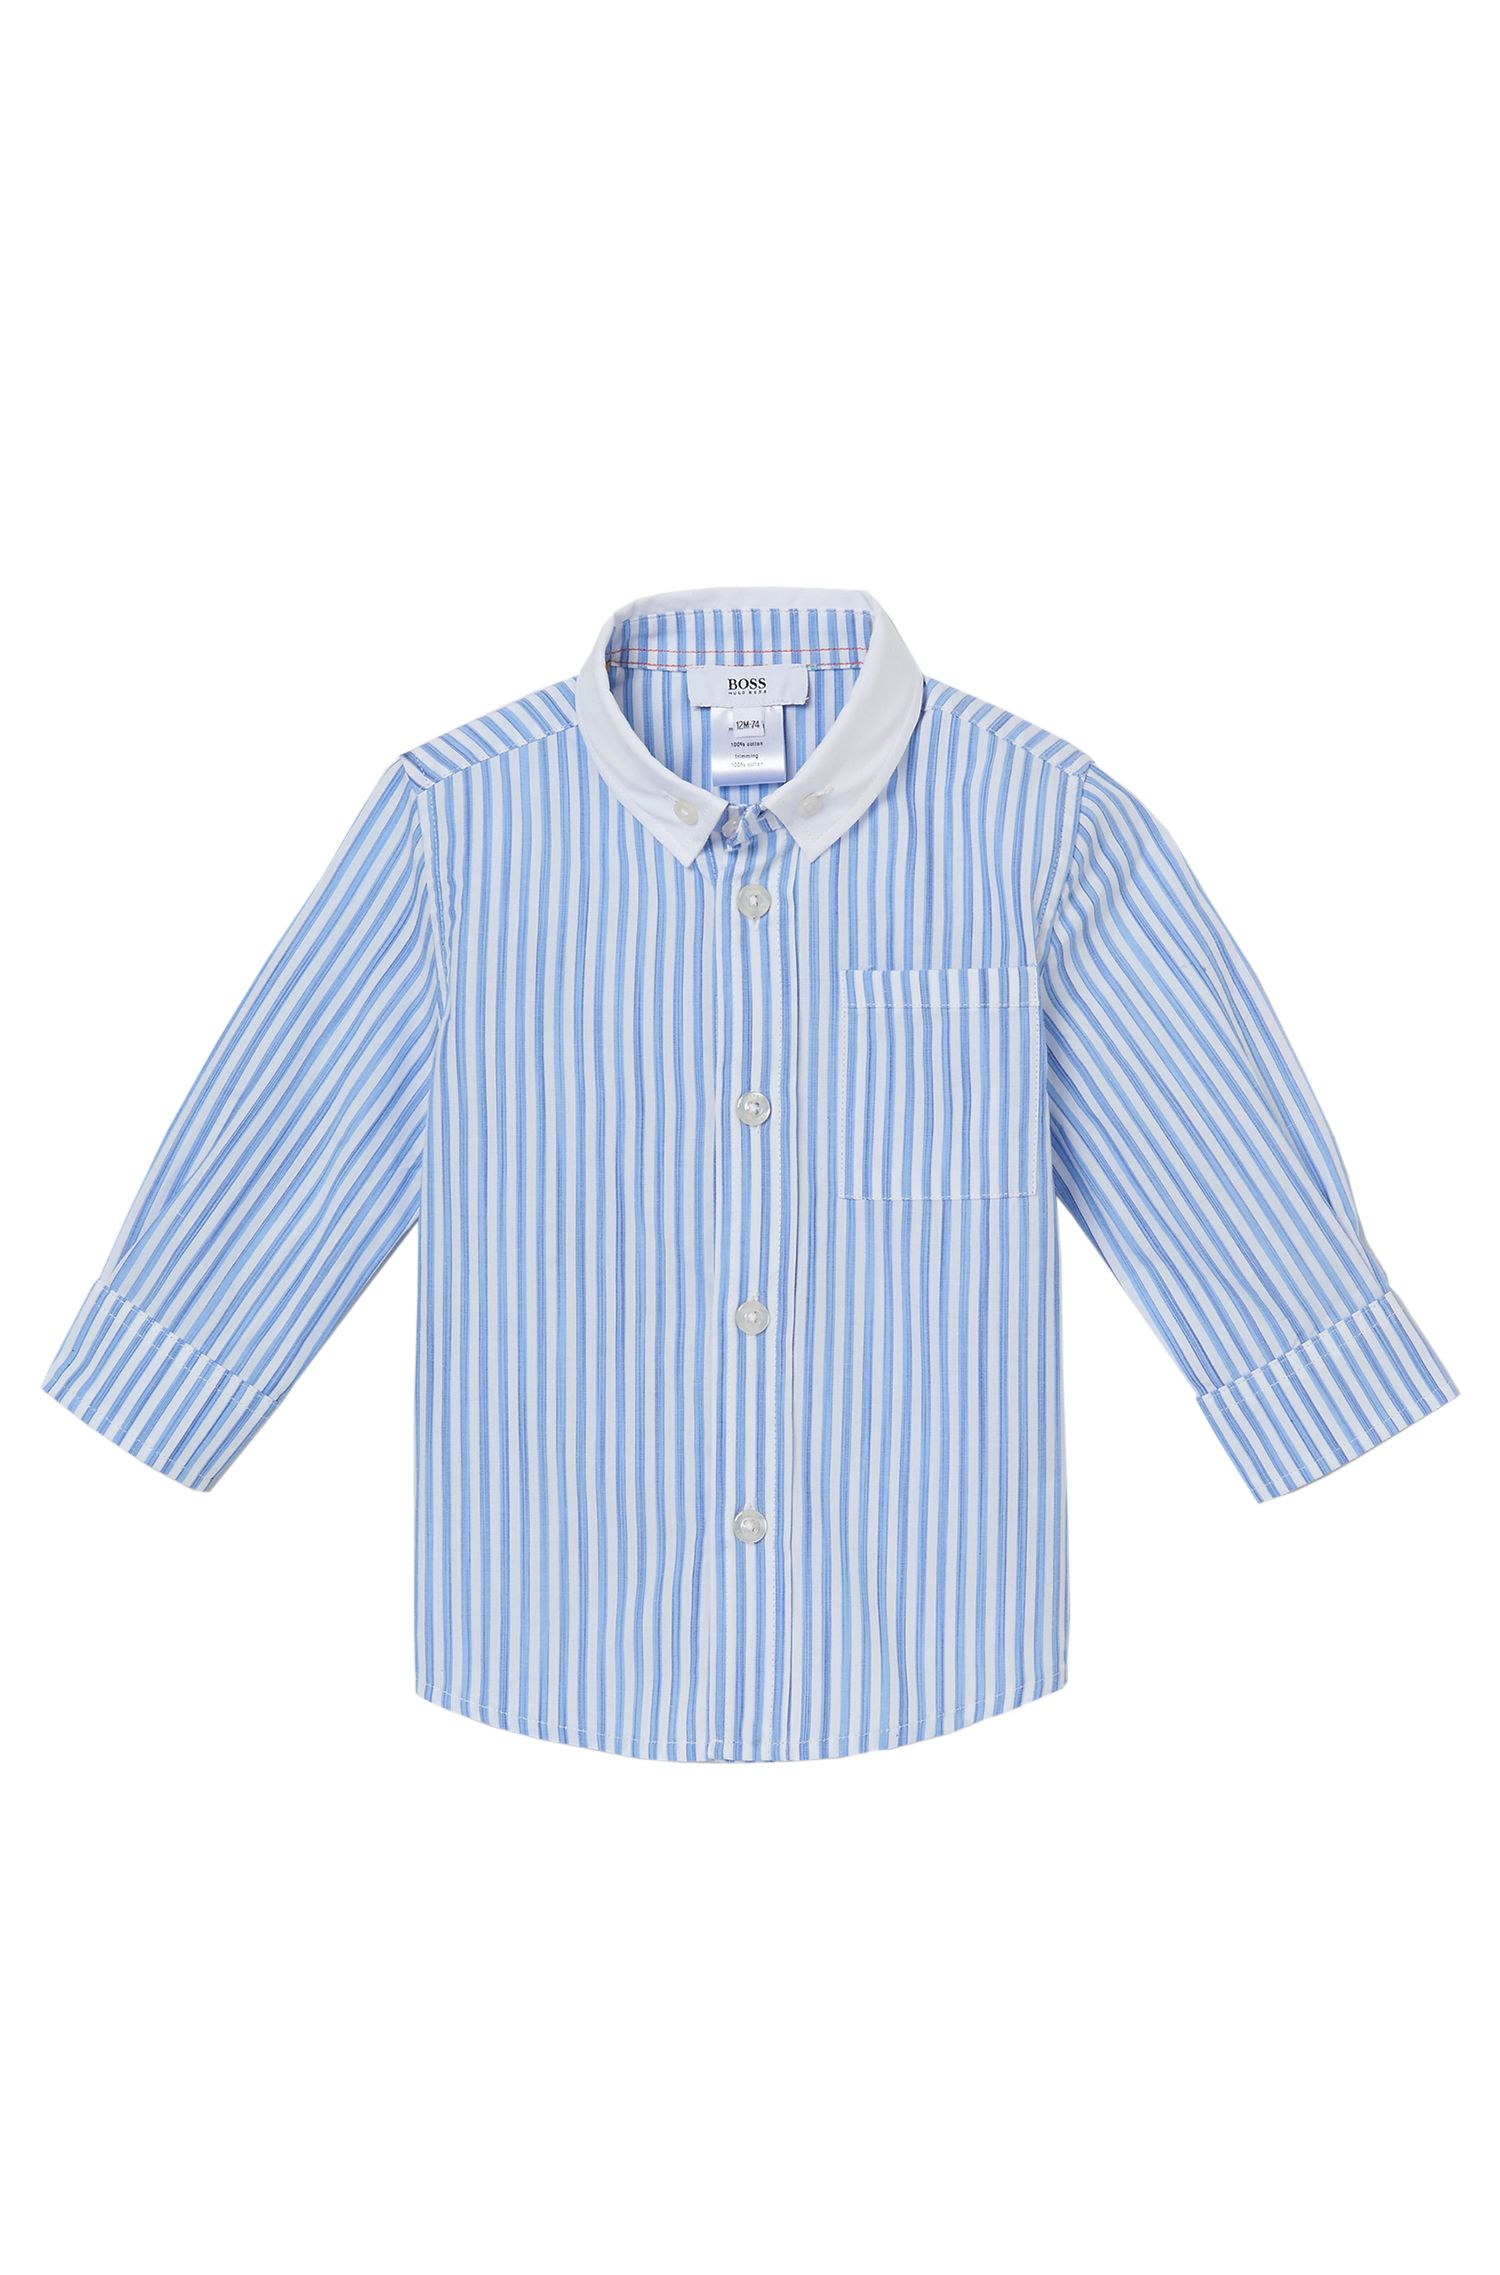 'J05467' | Toddler Cotton Striped Button Down Shirt